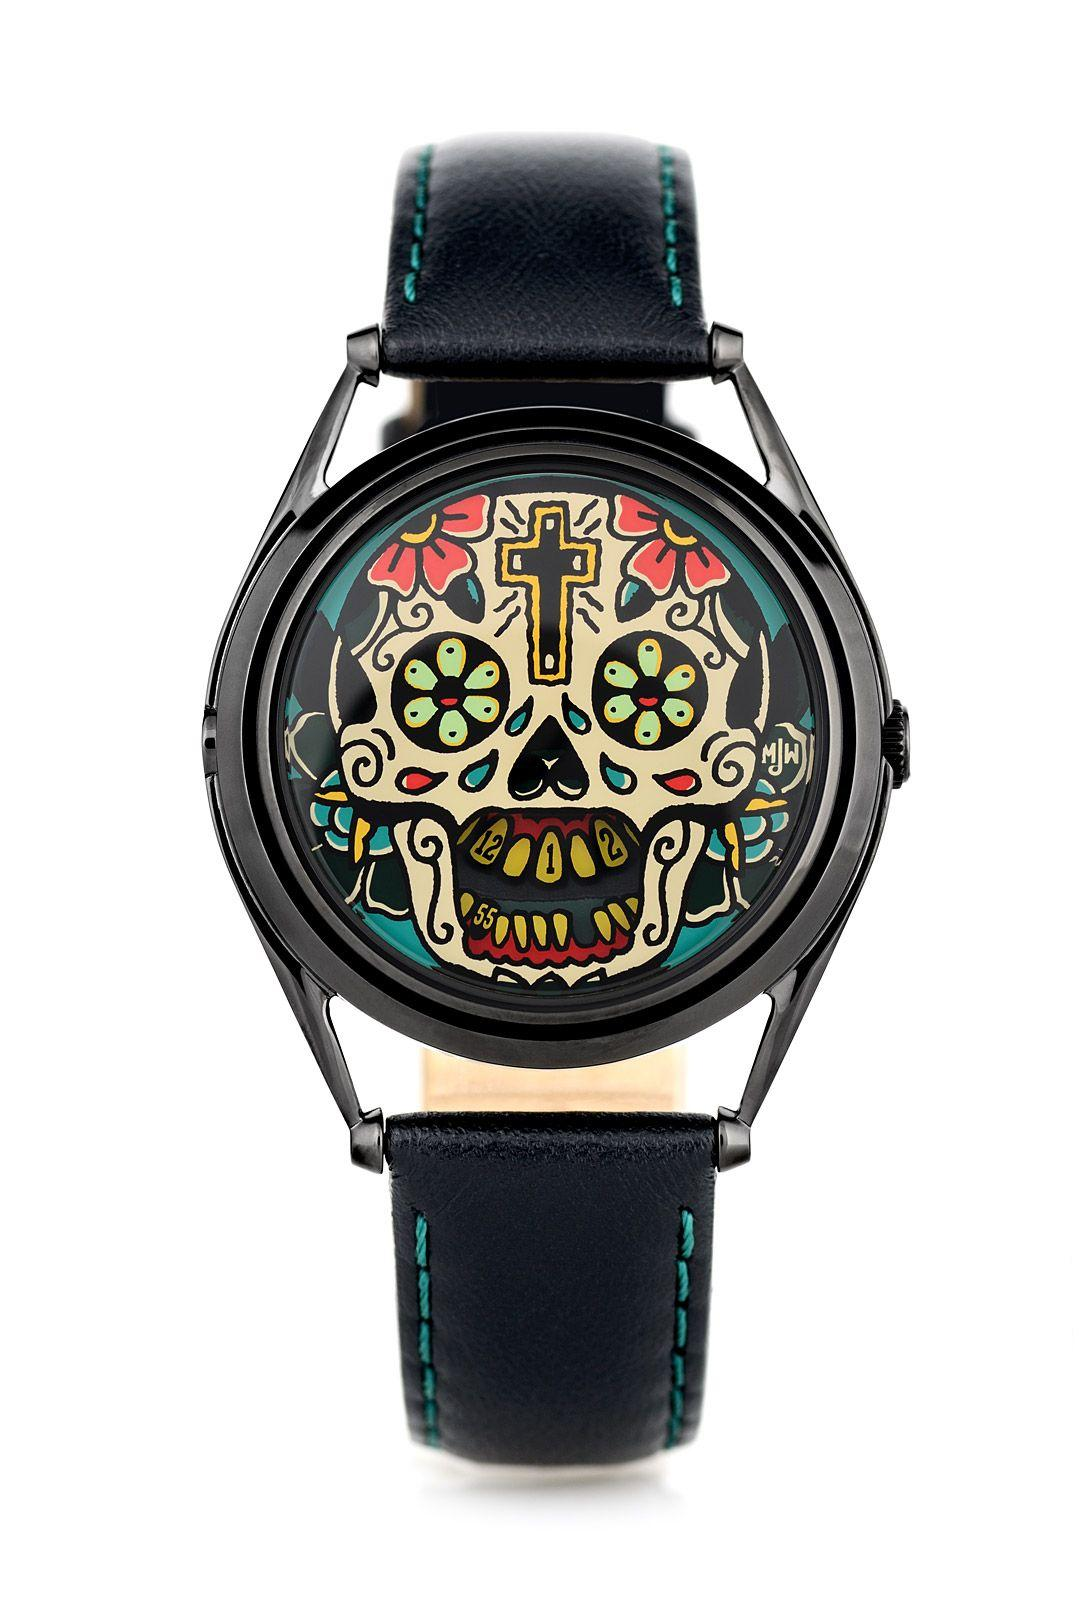 Homegrown wristwear: The watches made in England  | Watches